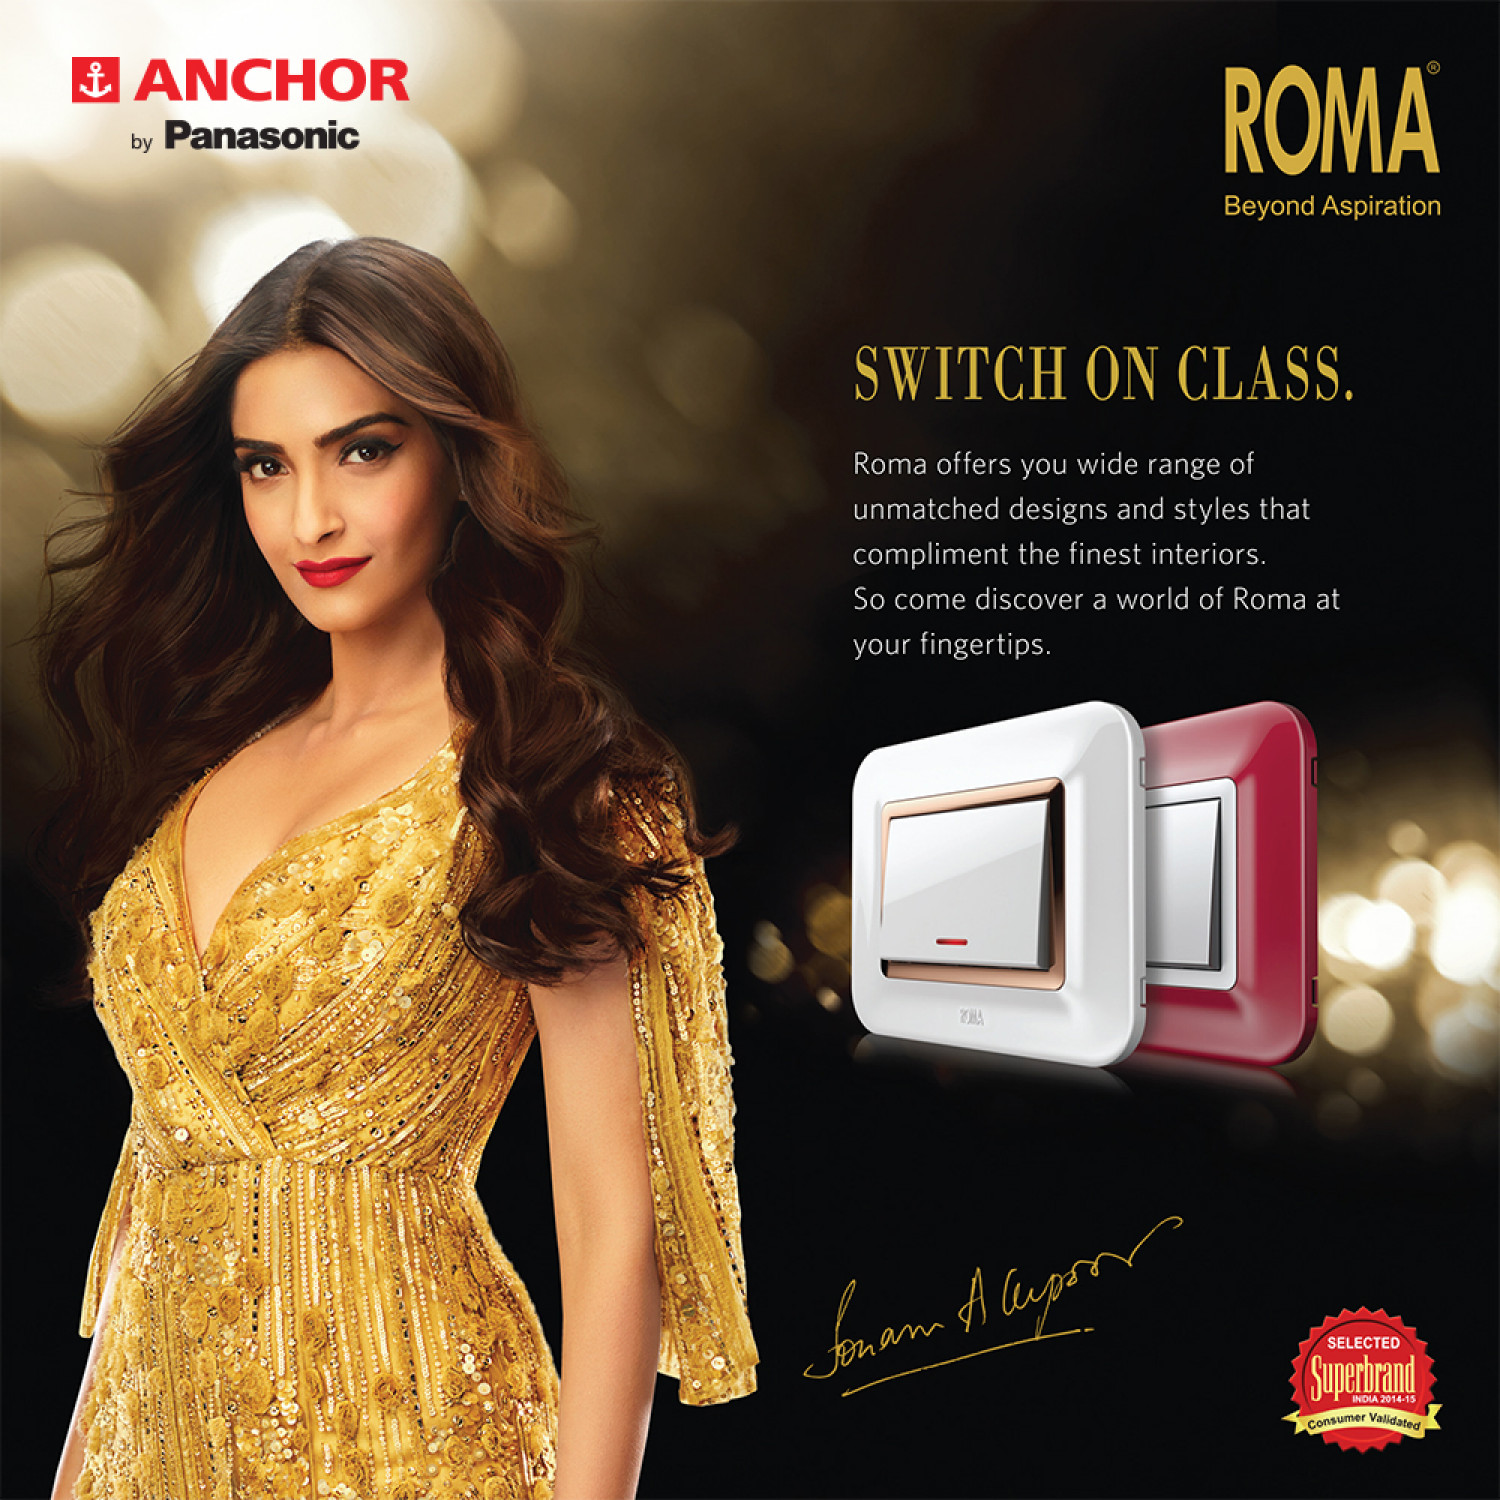 Introducing the new range of Roma Switches Infographic